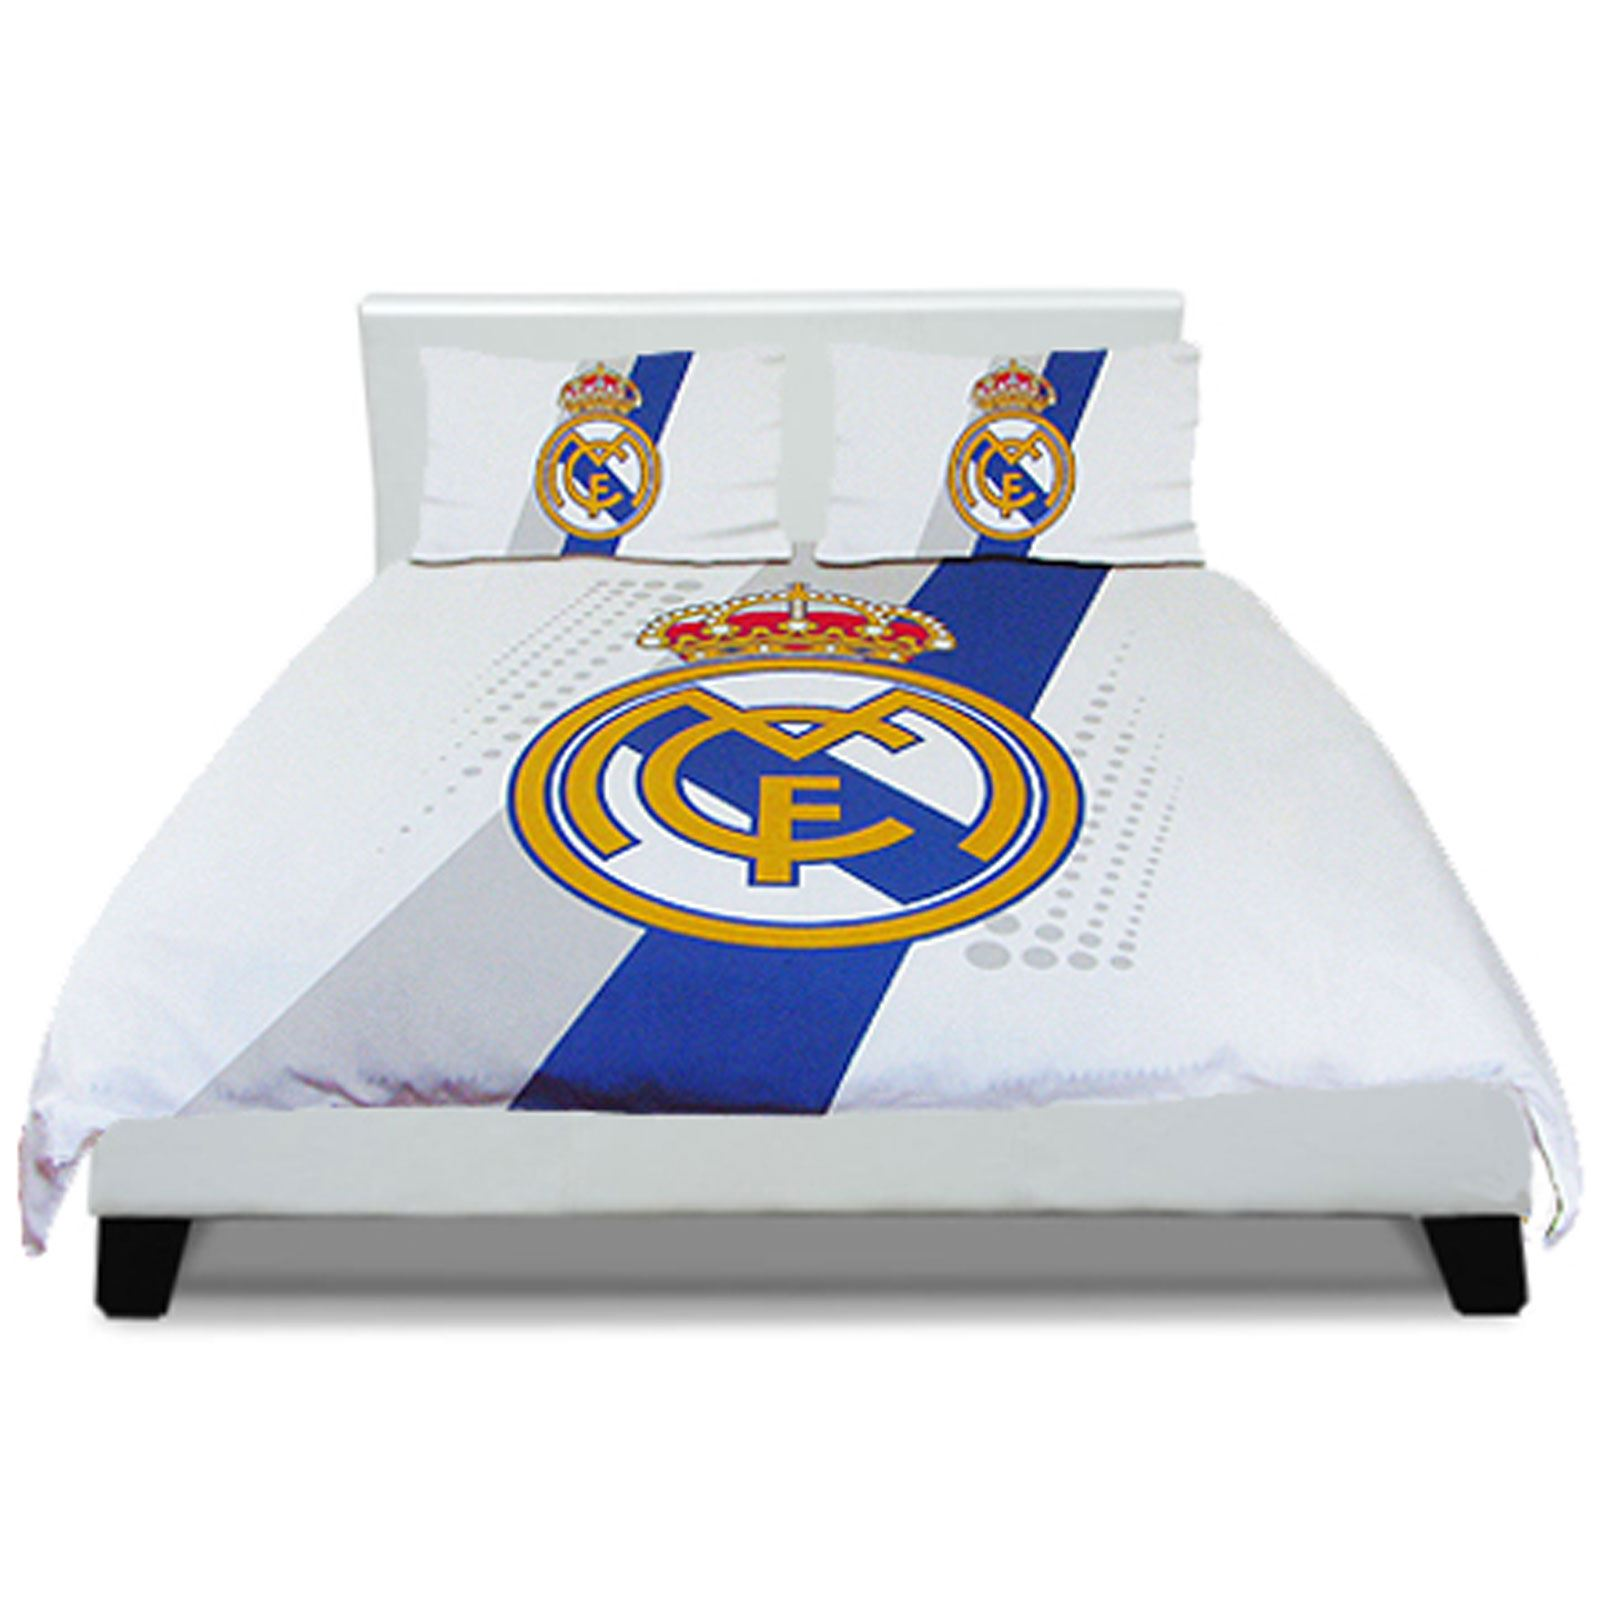 Single and double fc duvet cover bedding sets official for Housse couette foot